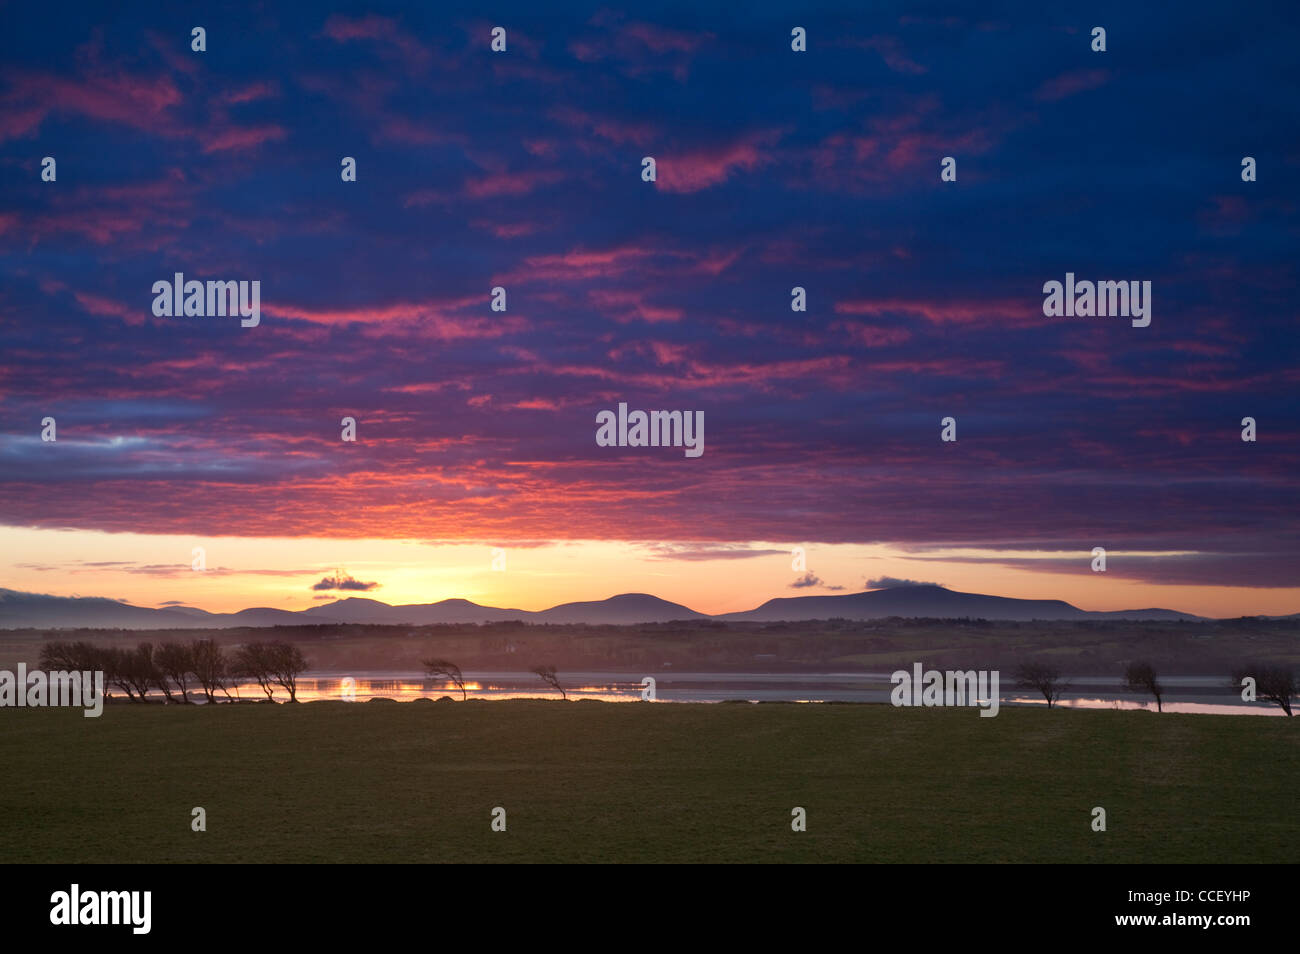 Sunset over the River Moy and Nephin Beg Mountains, County Sligo, Ireland. - Stock Image